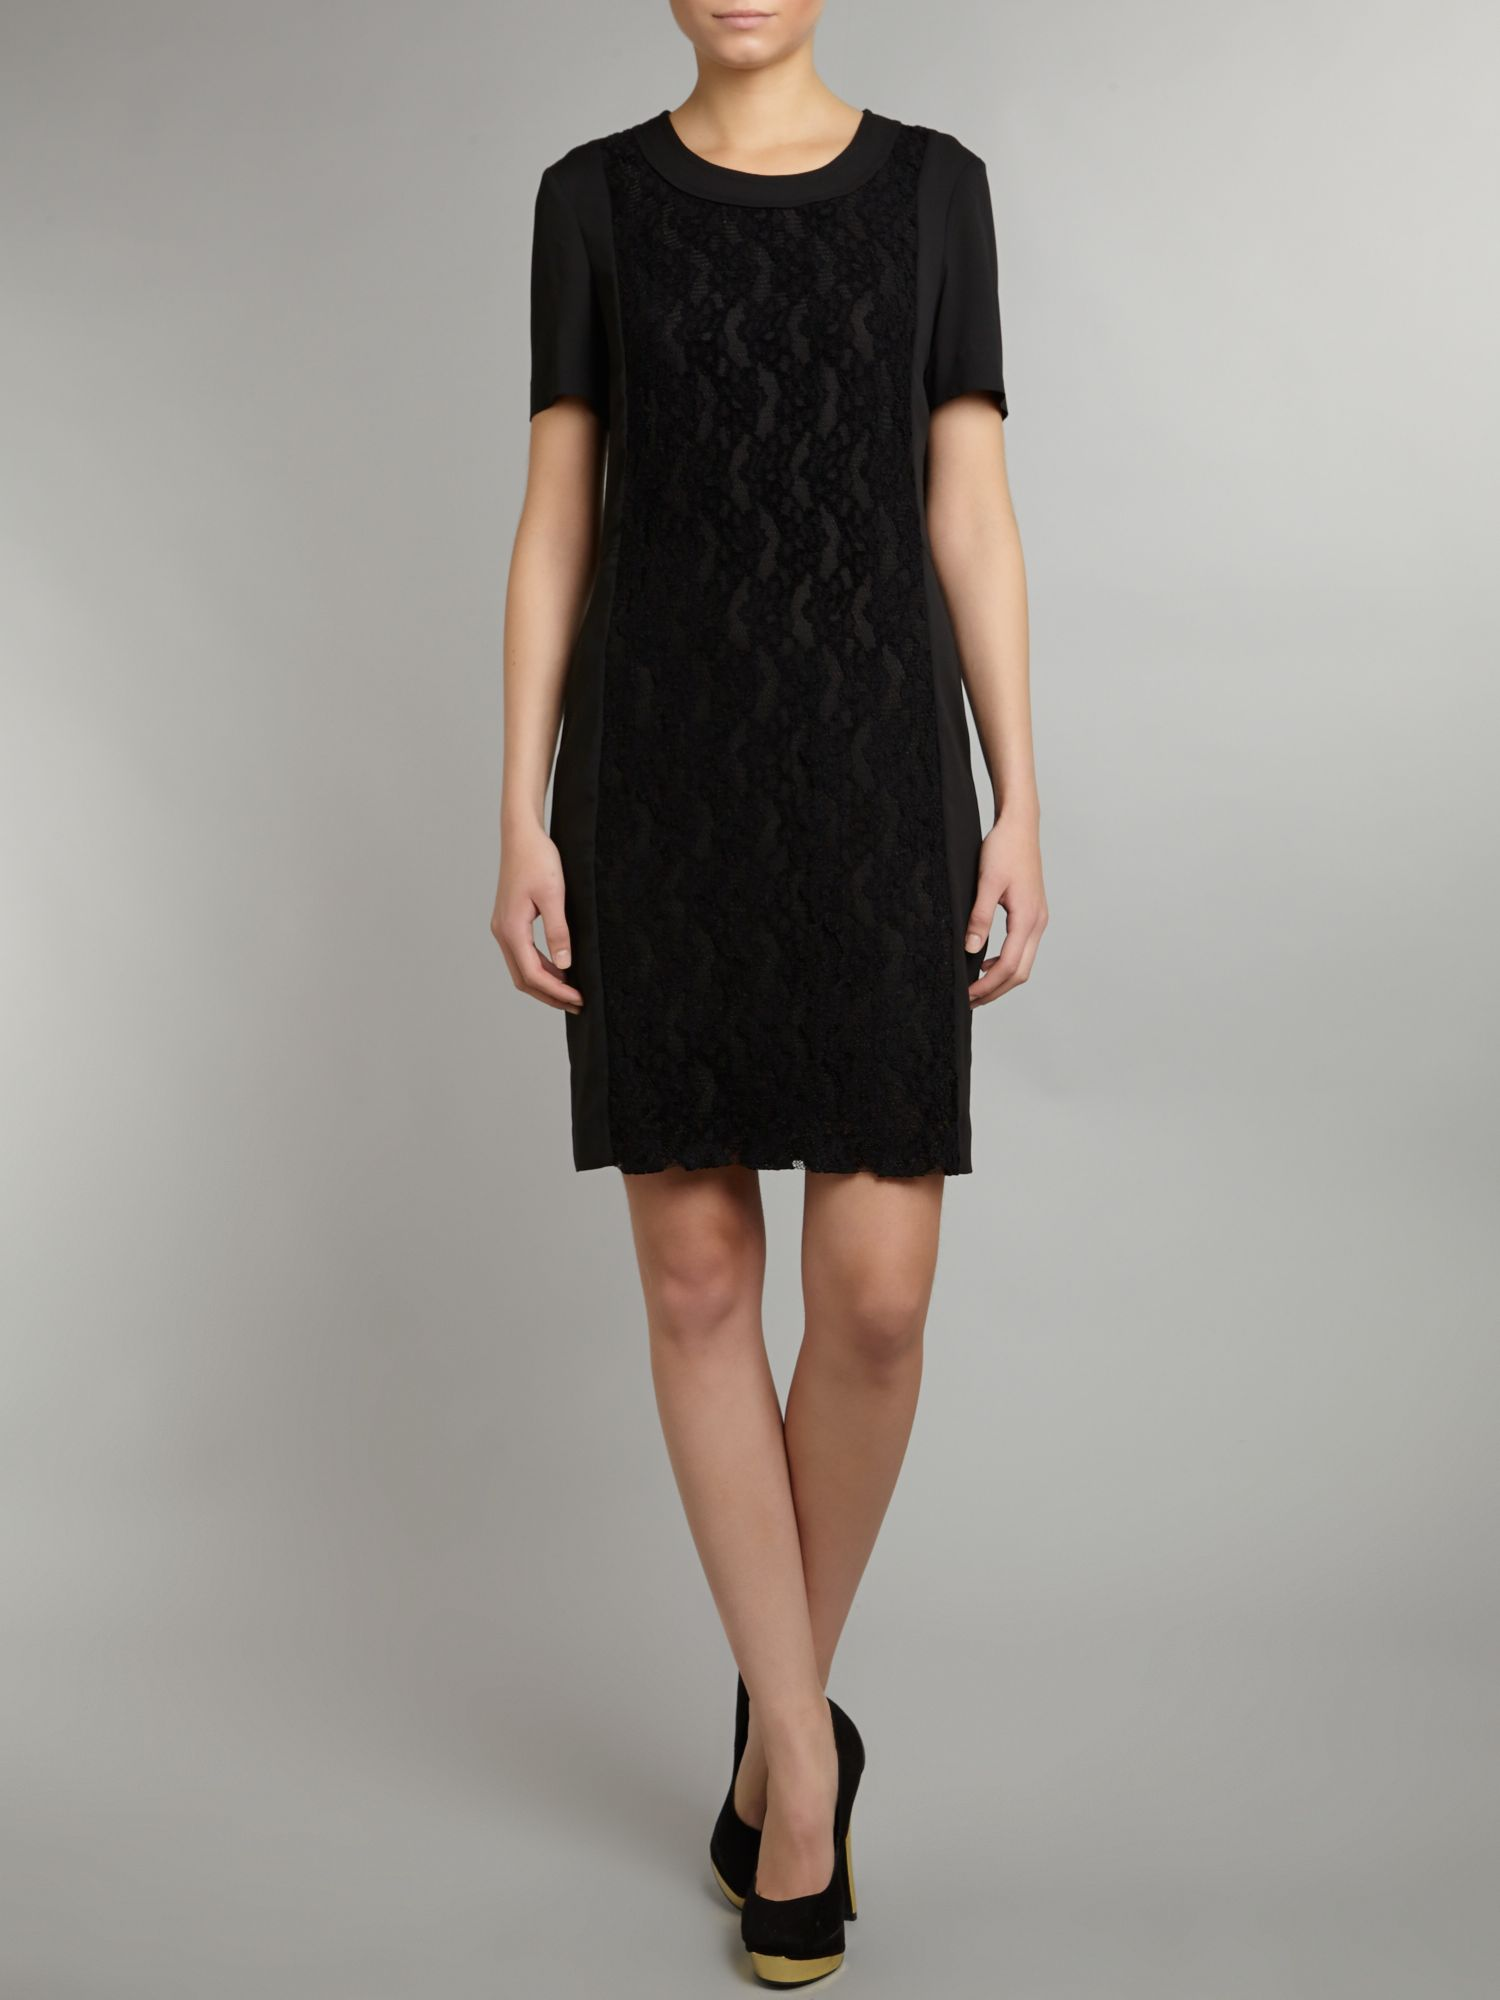 Short sleeve lace panel dress